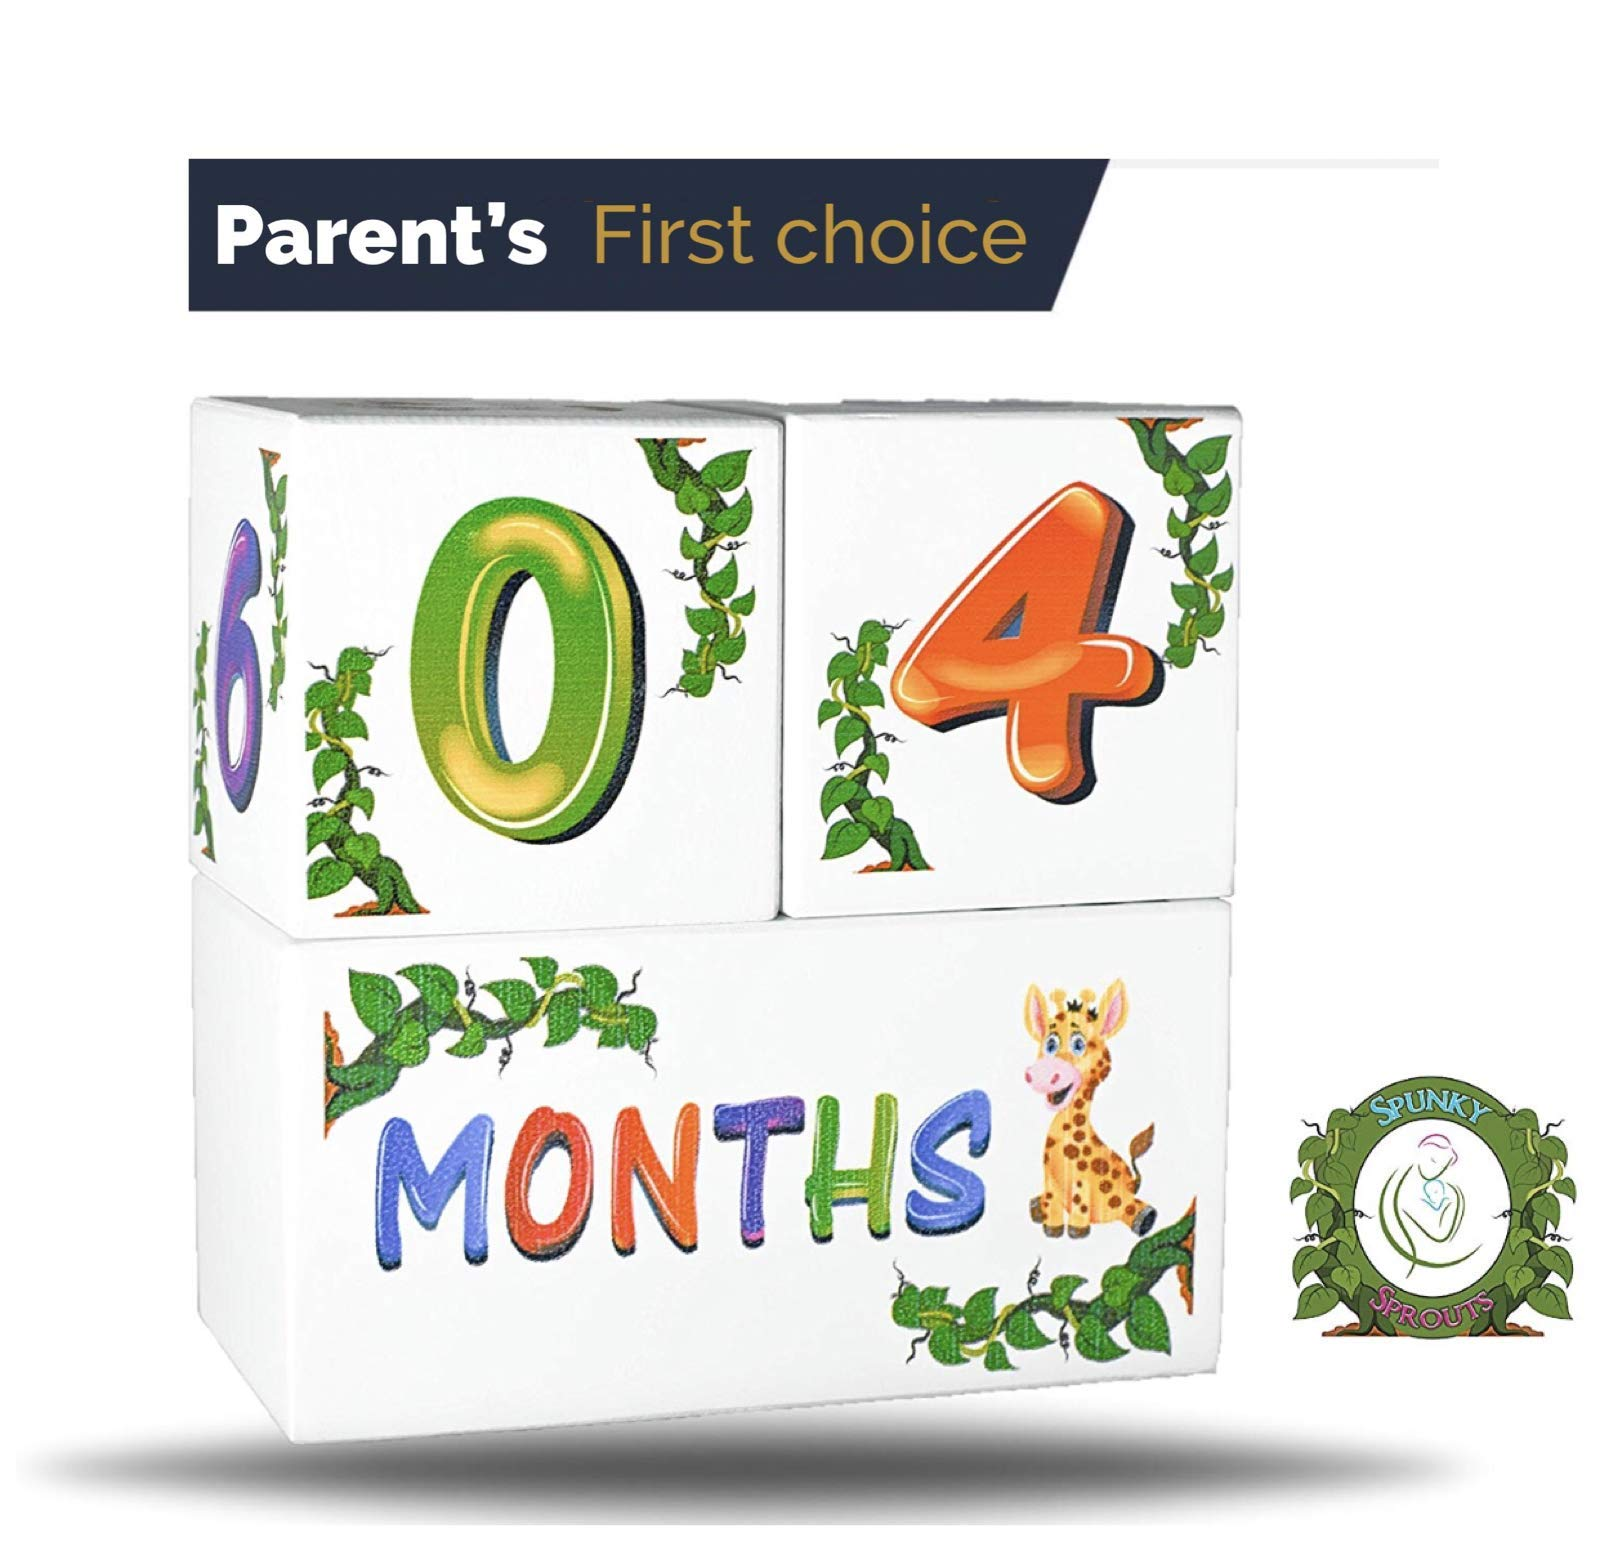 Premium Wood Milestone Age Blocks   Week, Month, Year, Grade Pictures   Growth Newborn Age Photo Blocks   Perfect Baby Shower Gift and Keepsake by Spunky Sprouts